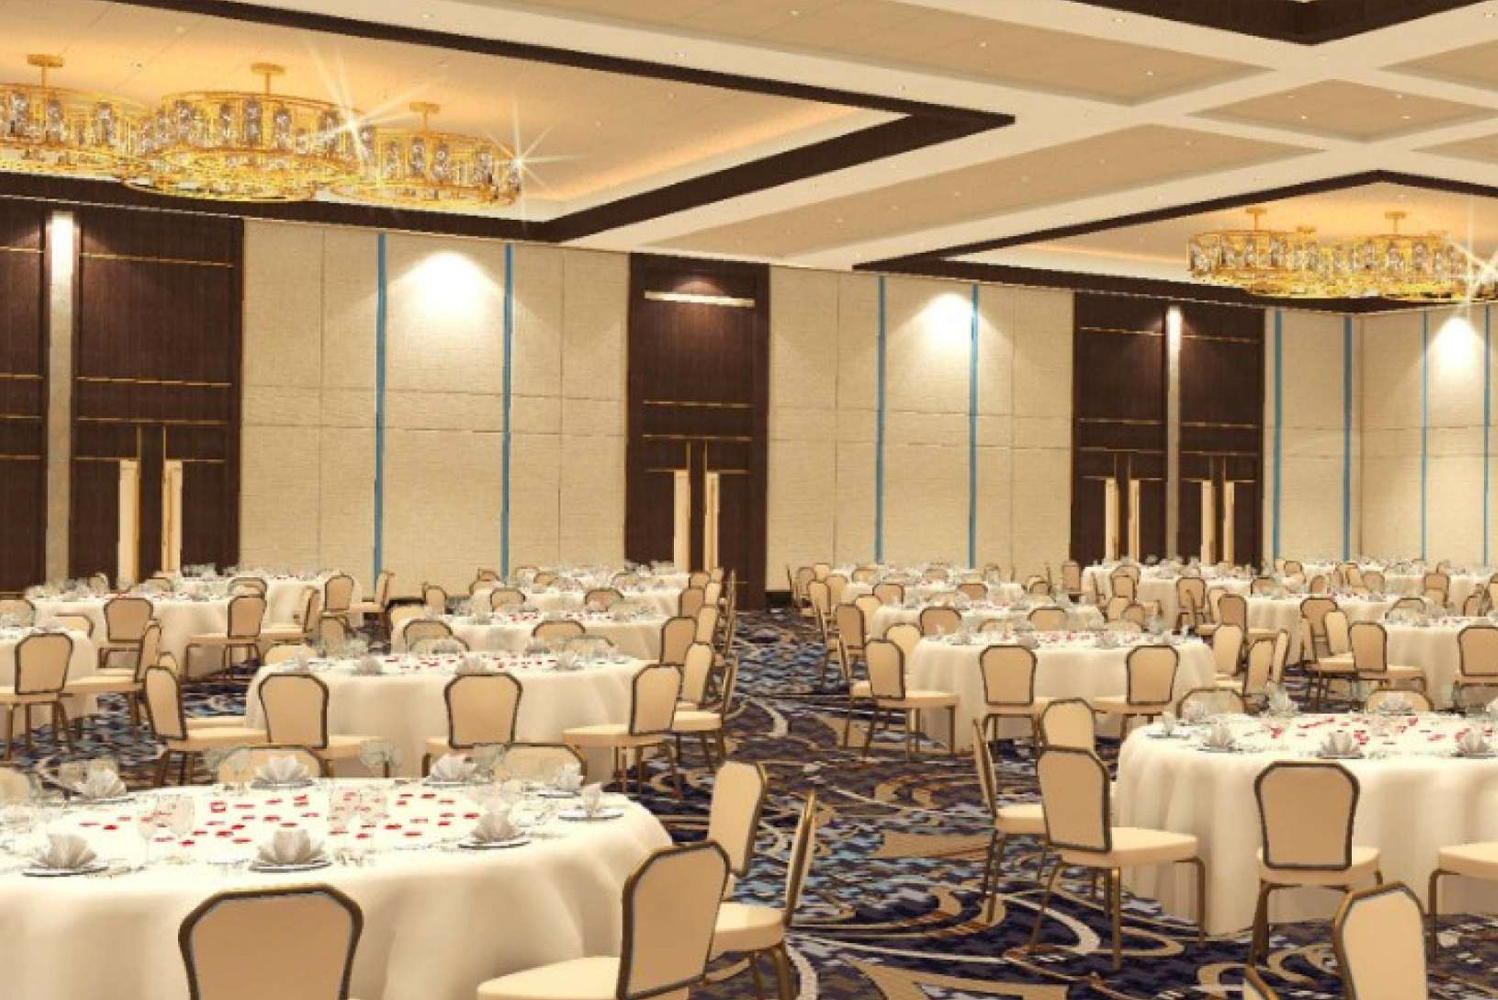 For events, the property will have approximately 42,500 square feet of space. Photo credit: MGM Resorts International